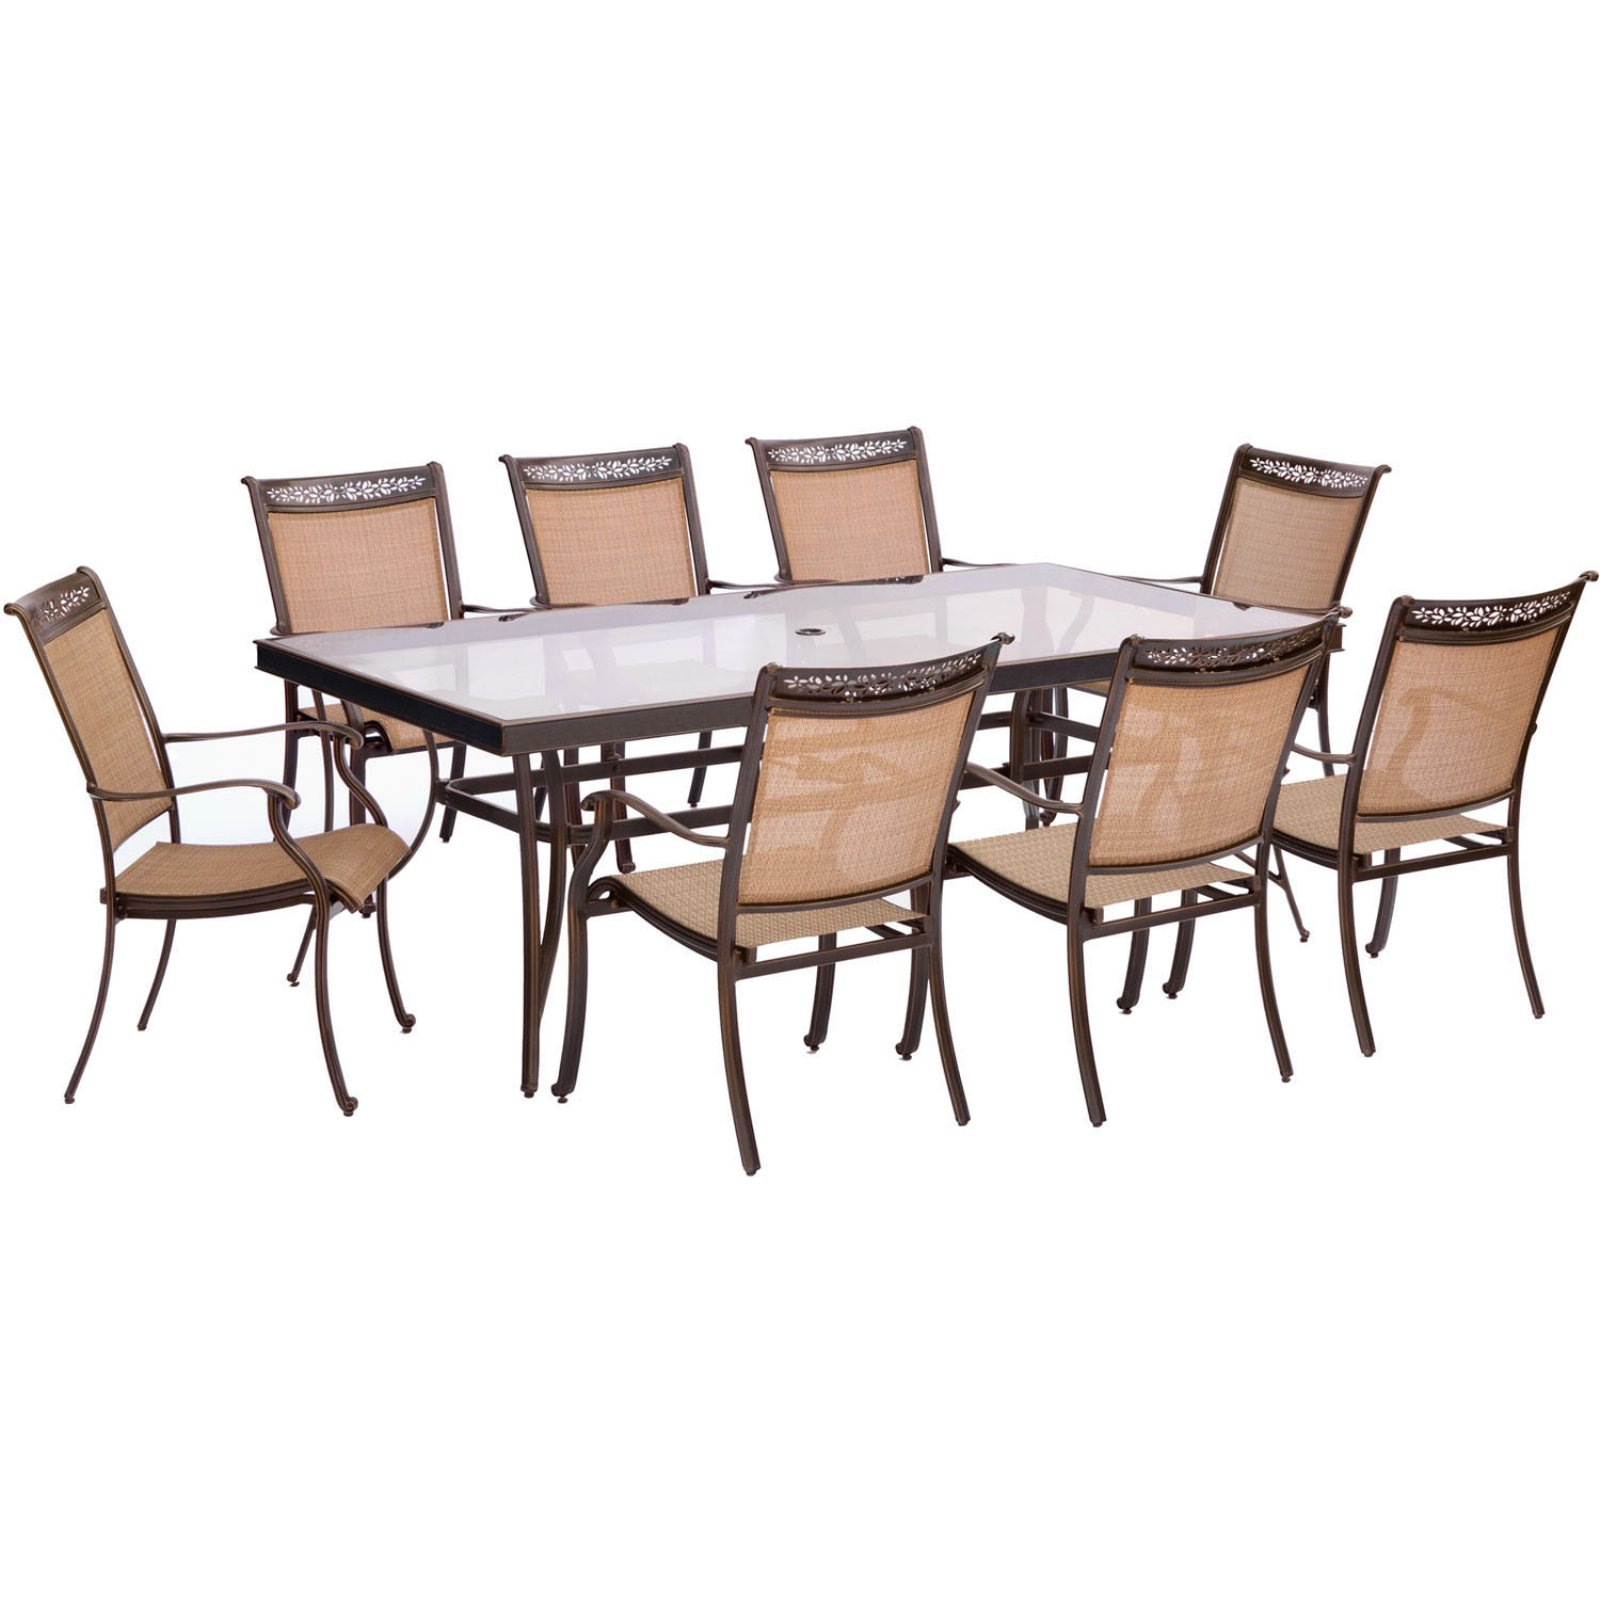 Hanover Fontana 9-Piece Outdoor Dining Set with Glass-Top Table